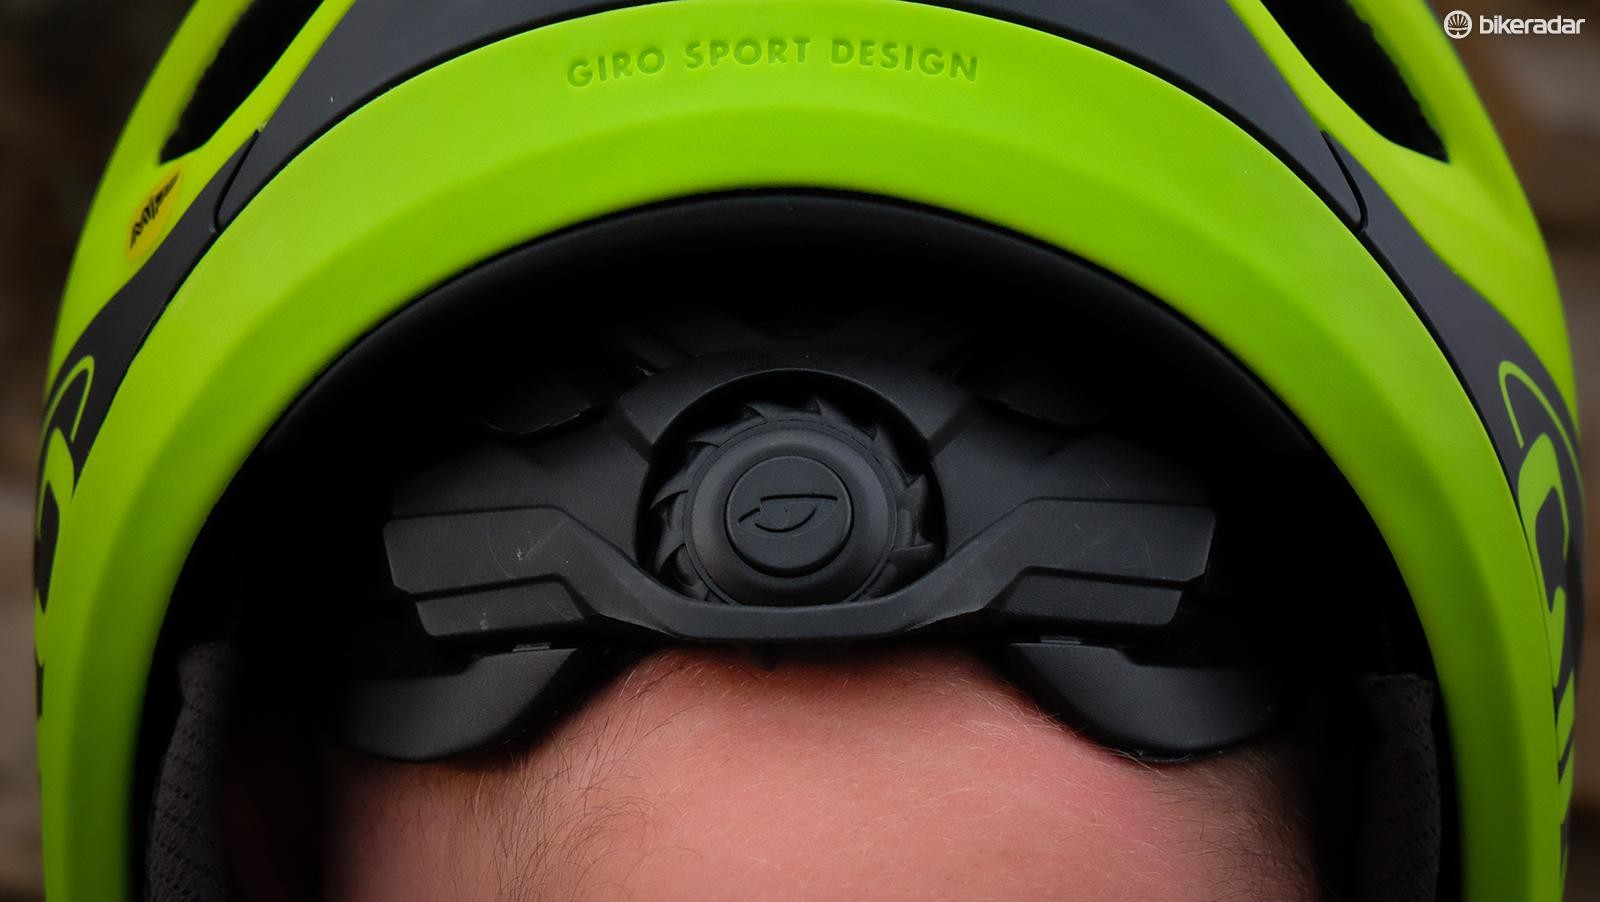 Giro's Roc Loc DH fit system sits at the base of the skull and makes it easy to dial in the fit